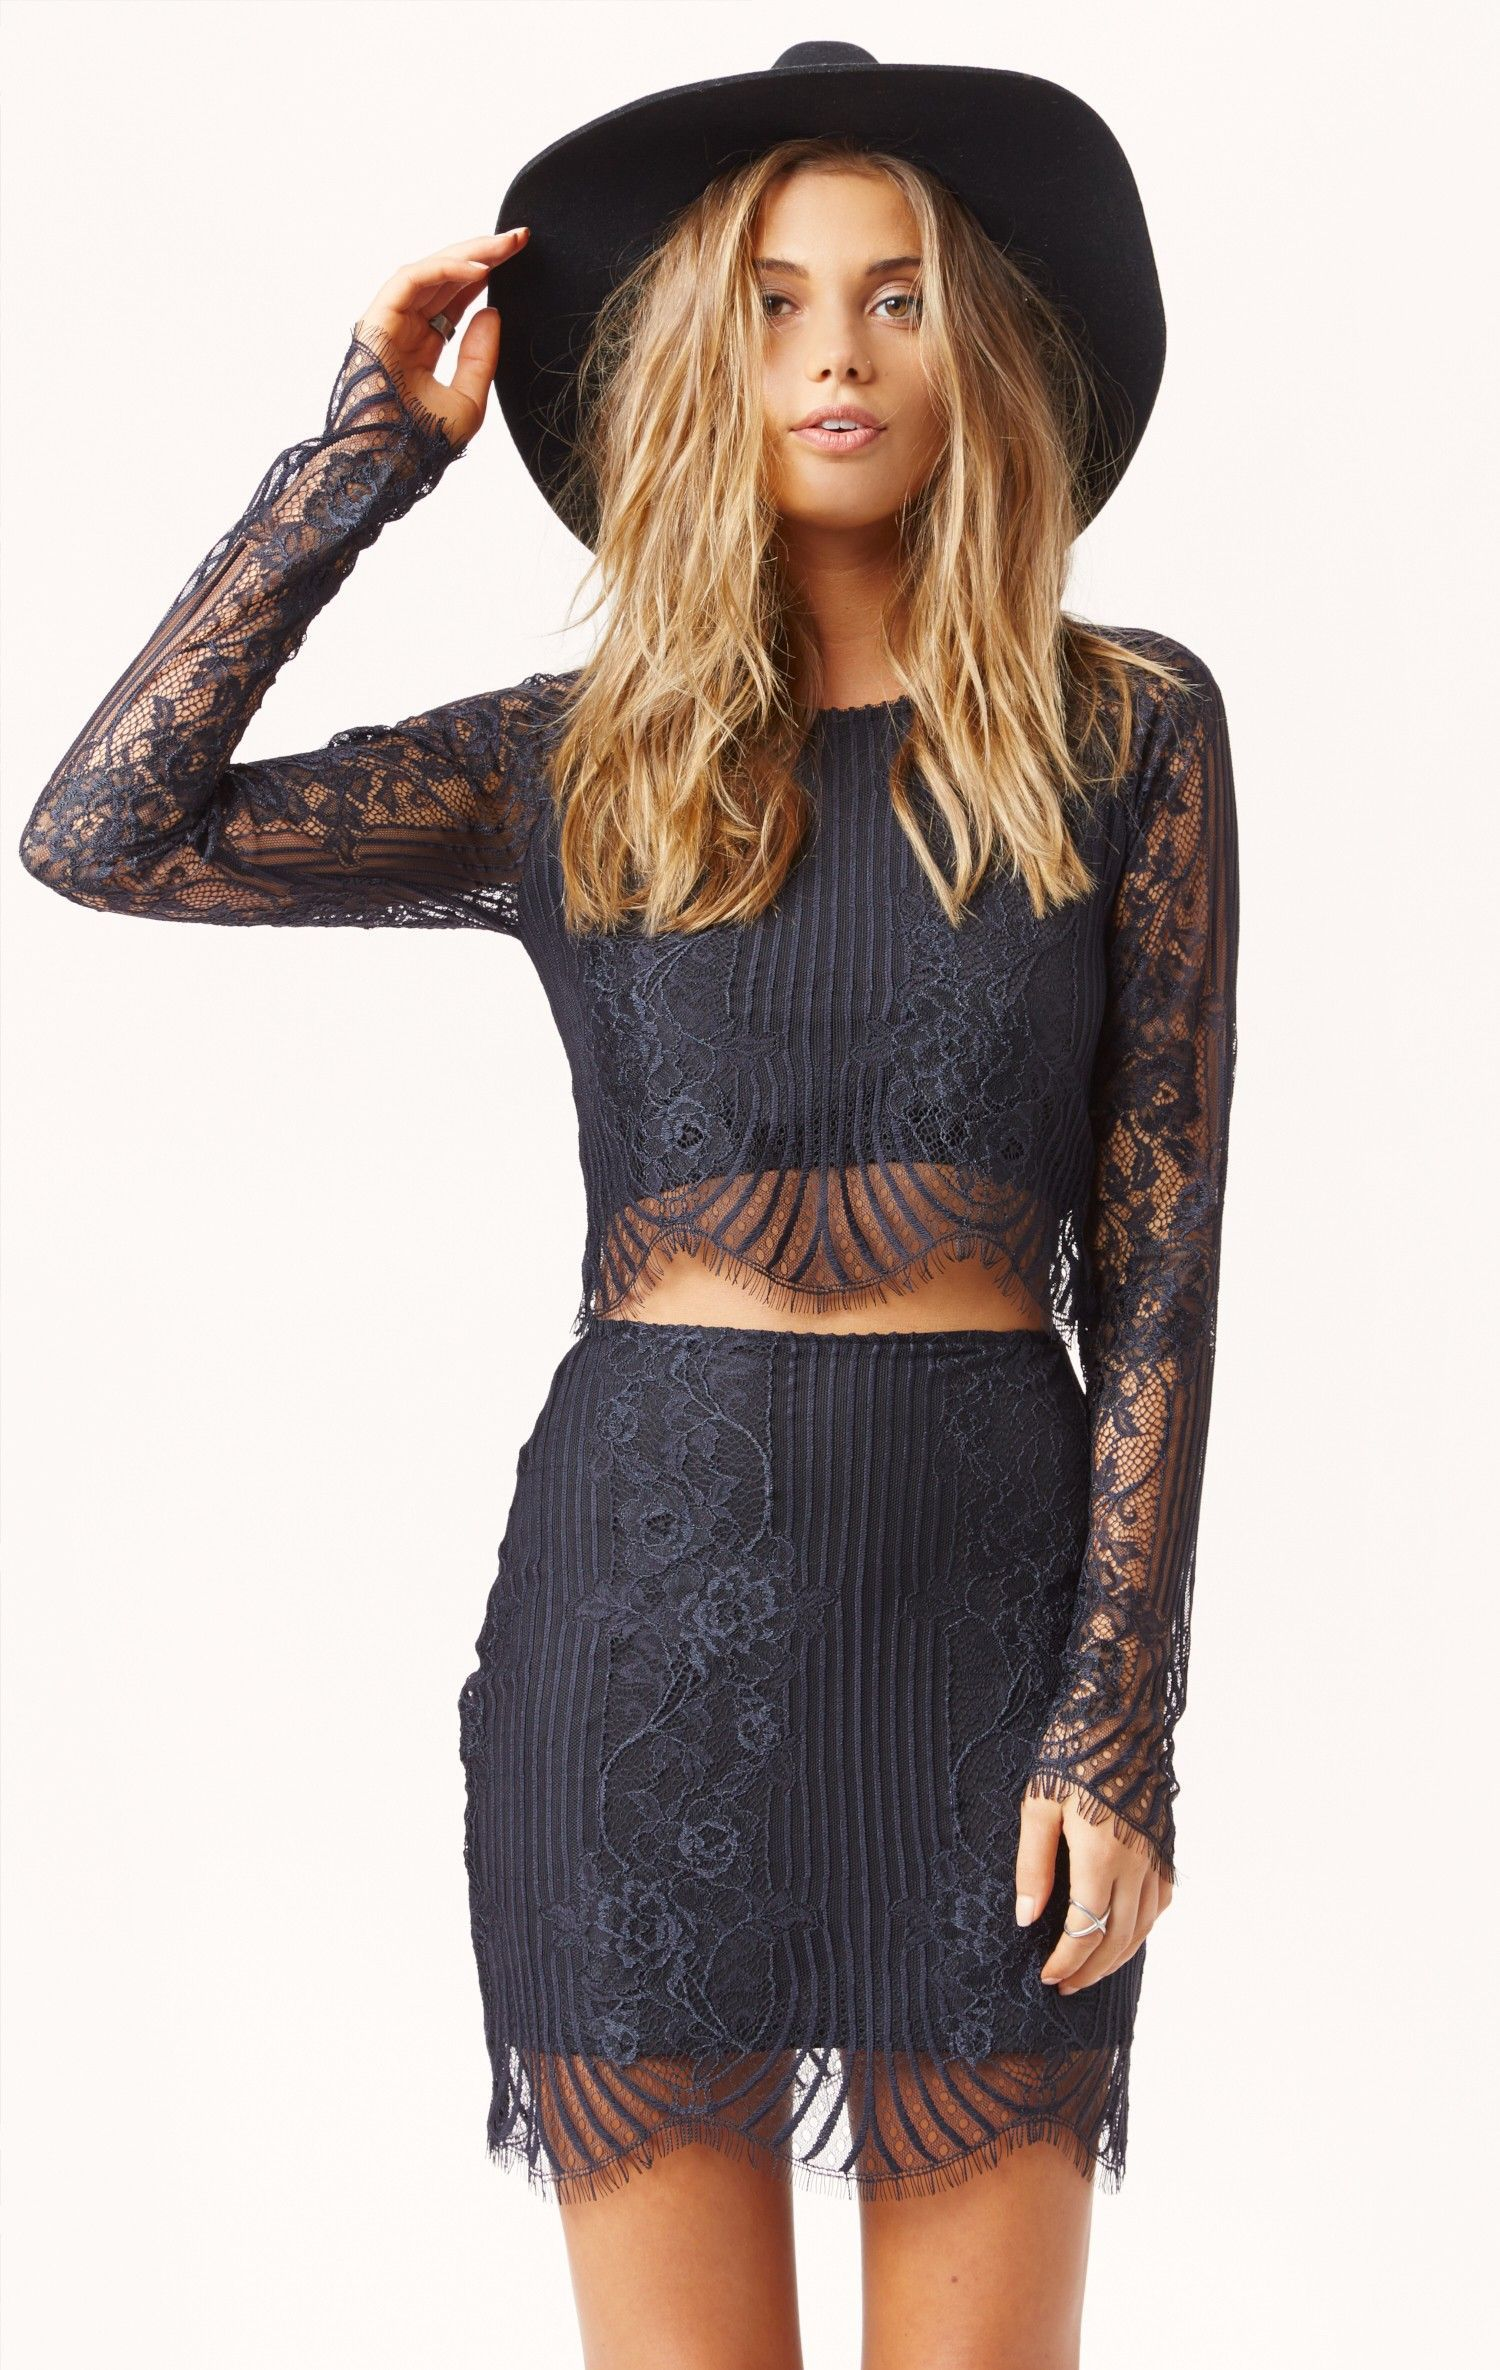 850048d6941 Lolo crop top | She gets H E R way | Fashion, Style, Tops